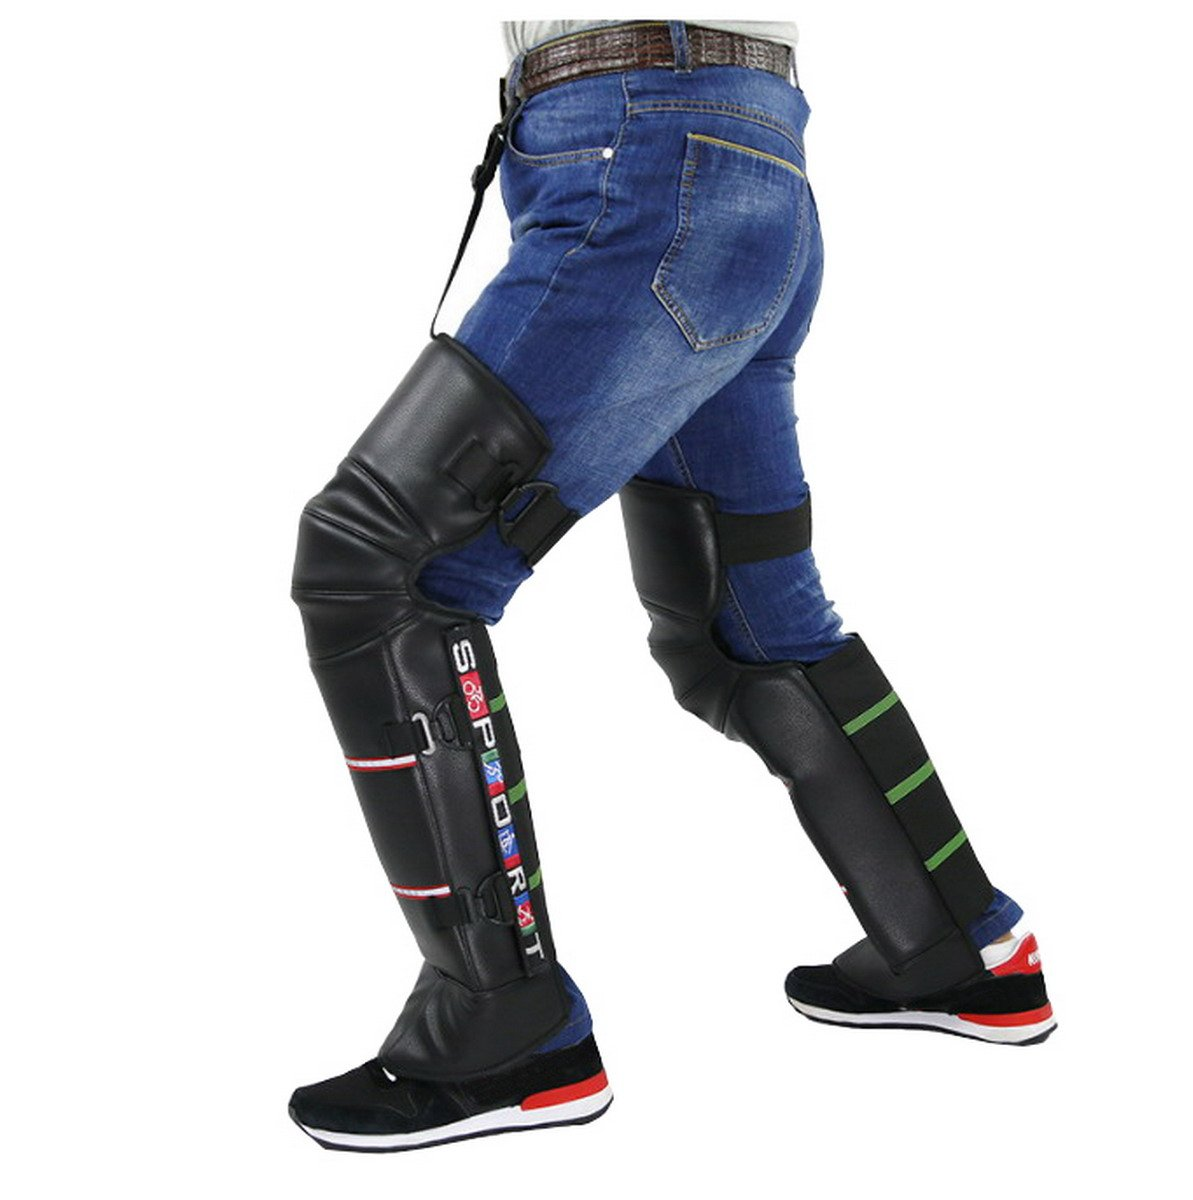 Mecoco Unisex Black Leather Warm Knee Pad Leg Warmer Protector Motorcycle Knee Protector Protective Half Chaps Leggings Covers Adjustable Strap Windproof for Winter Wind Snow Bike Motorcycle Rider